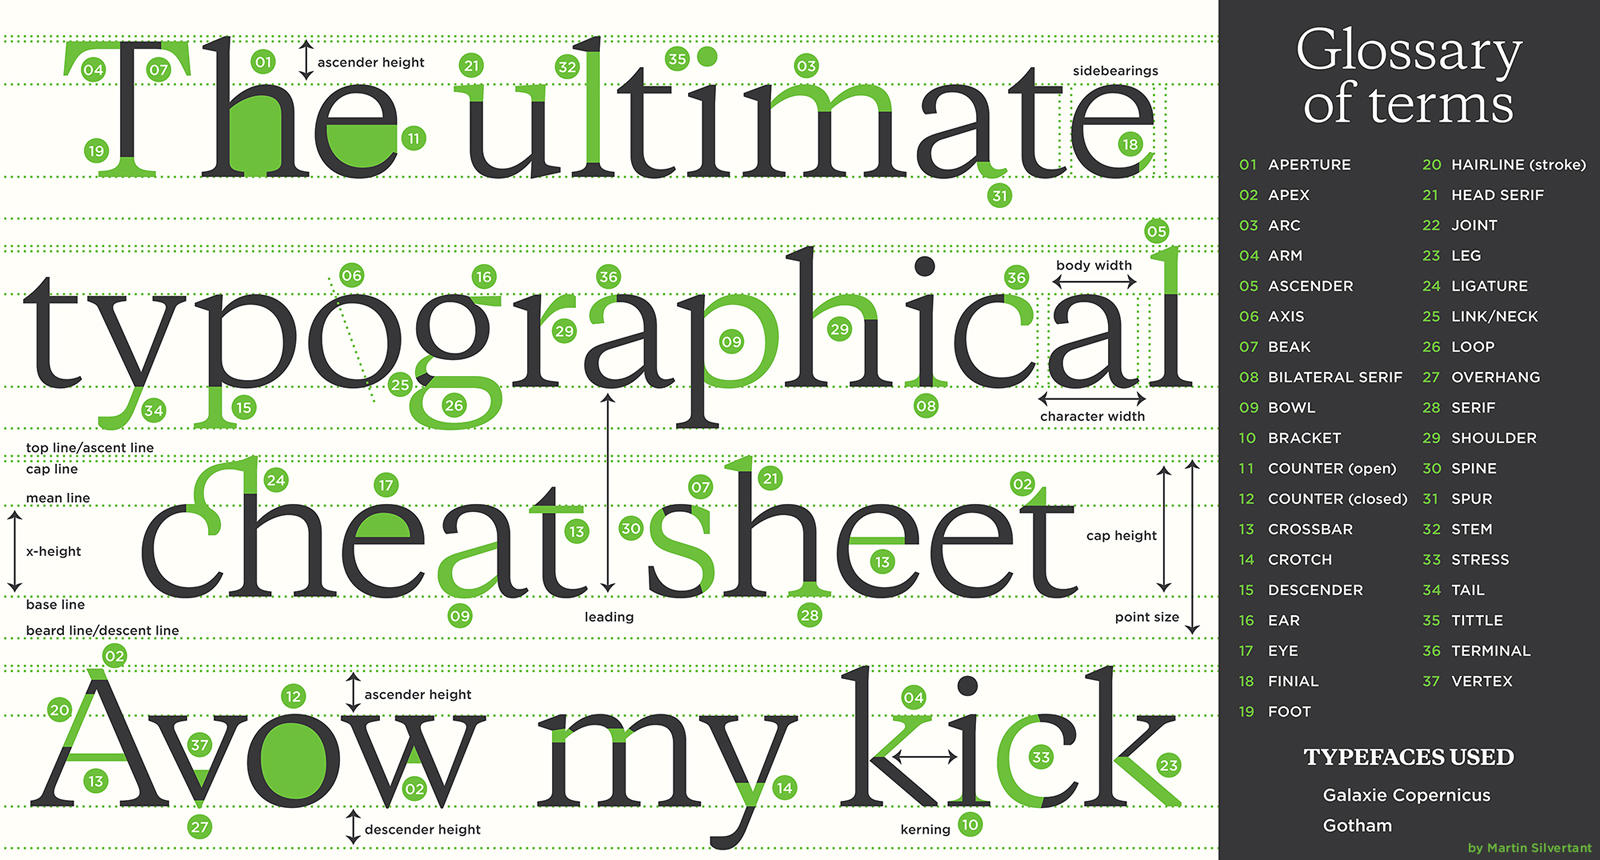 Anatomy of typography by MartinSilvertant on DeviantArt